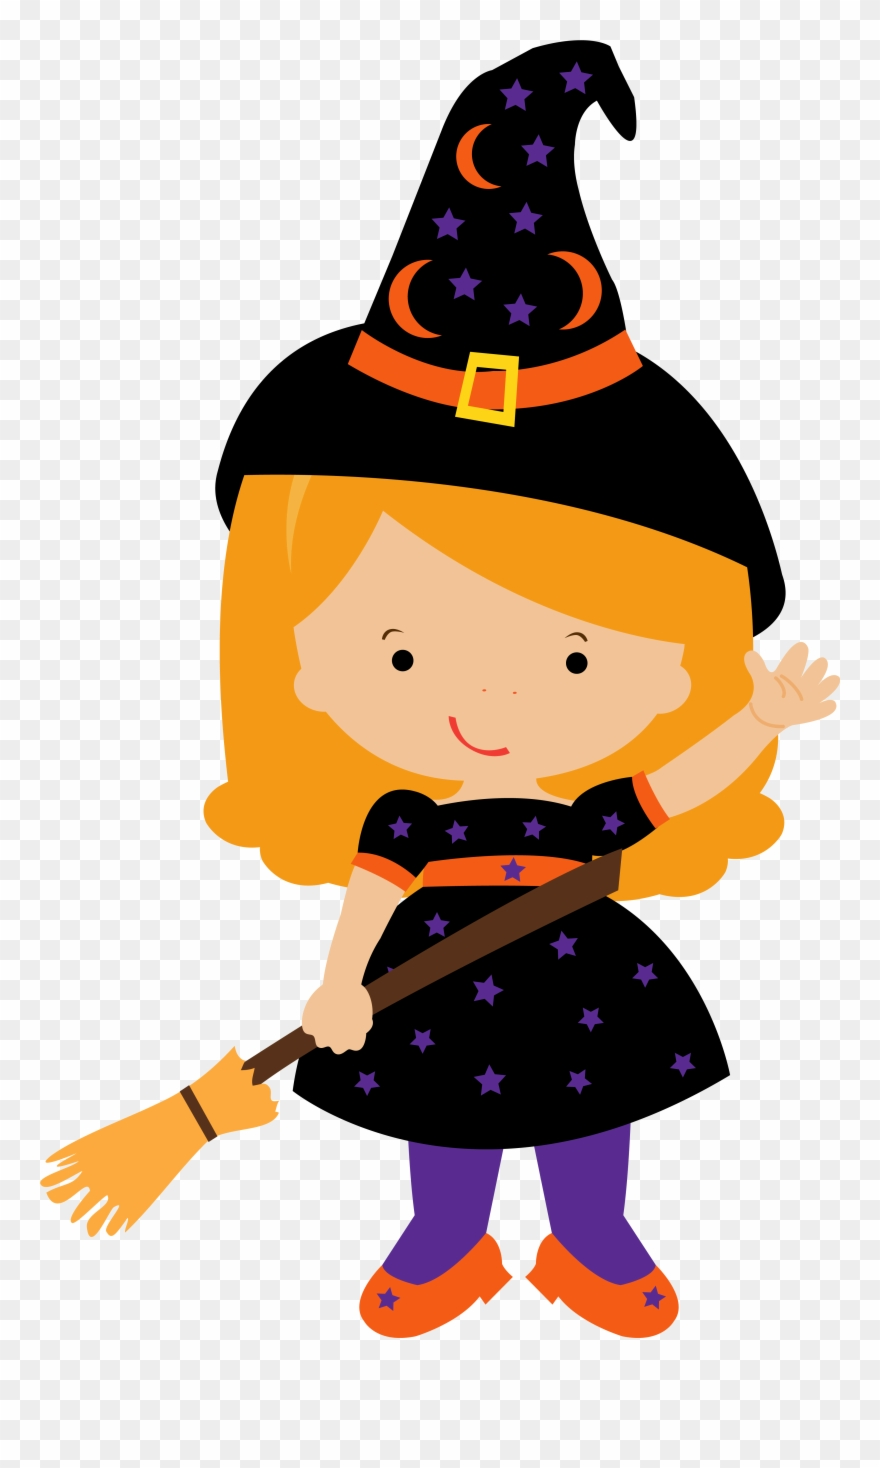 medium resolution of free halloween witch clipart 13 clip art transparent background witch clipart png download